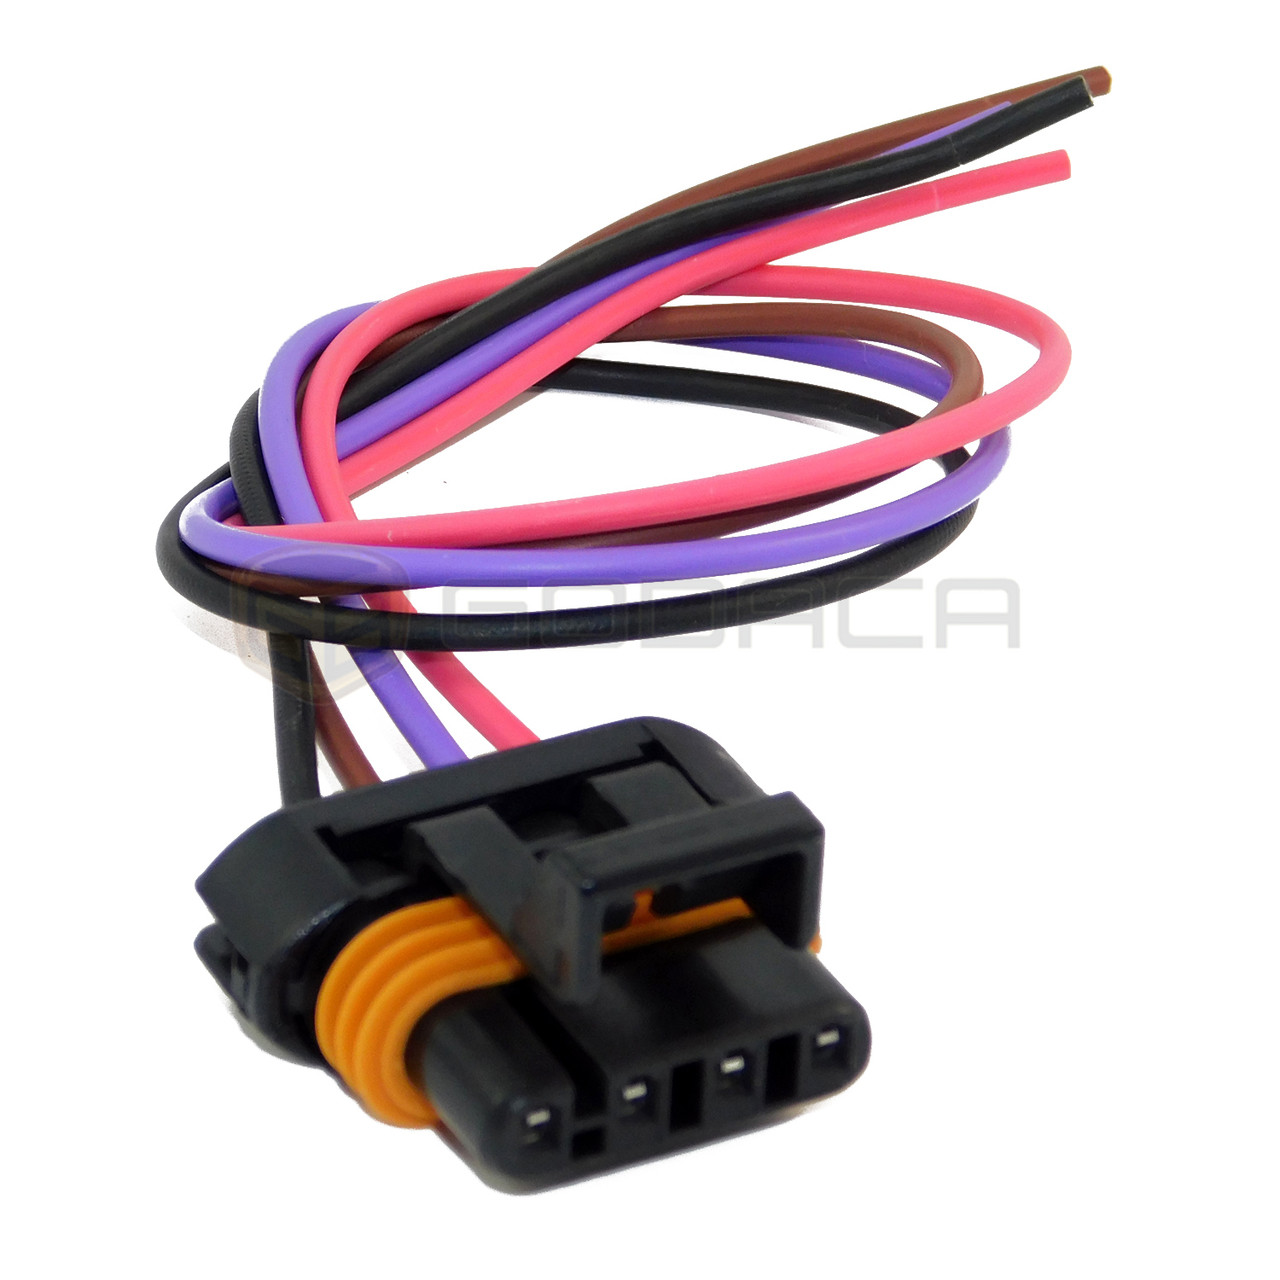 1 x ls1 ls6 ignition coil wiring harness pigtail connector gm camaro corvette godaca llc  [ 1280 x 1280 Pixel ]